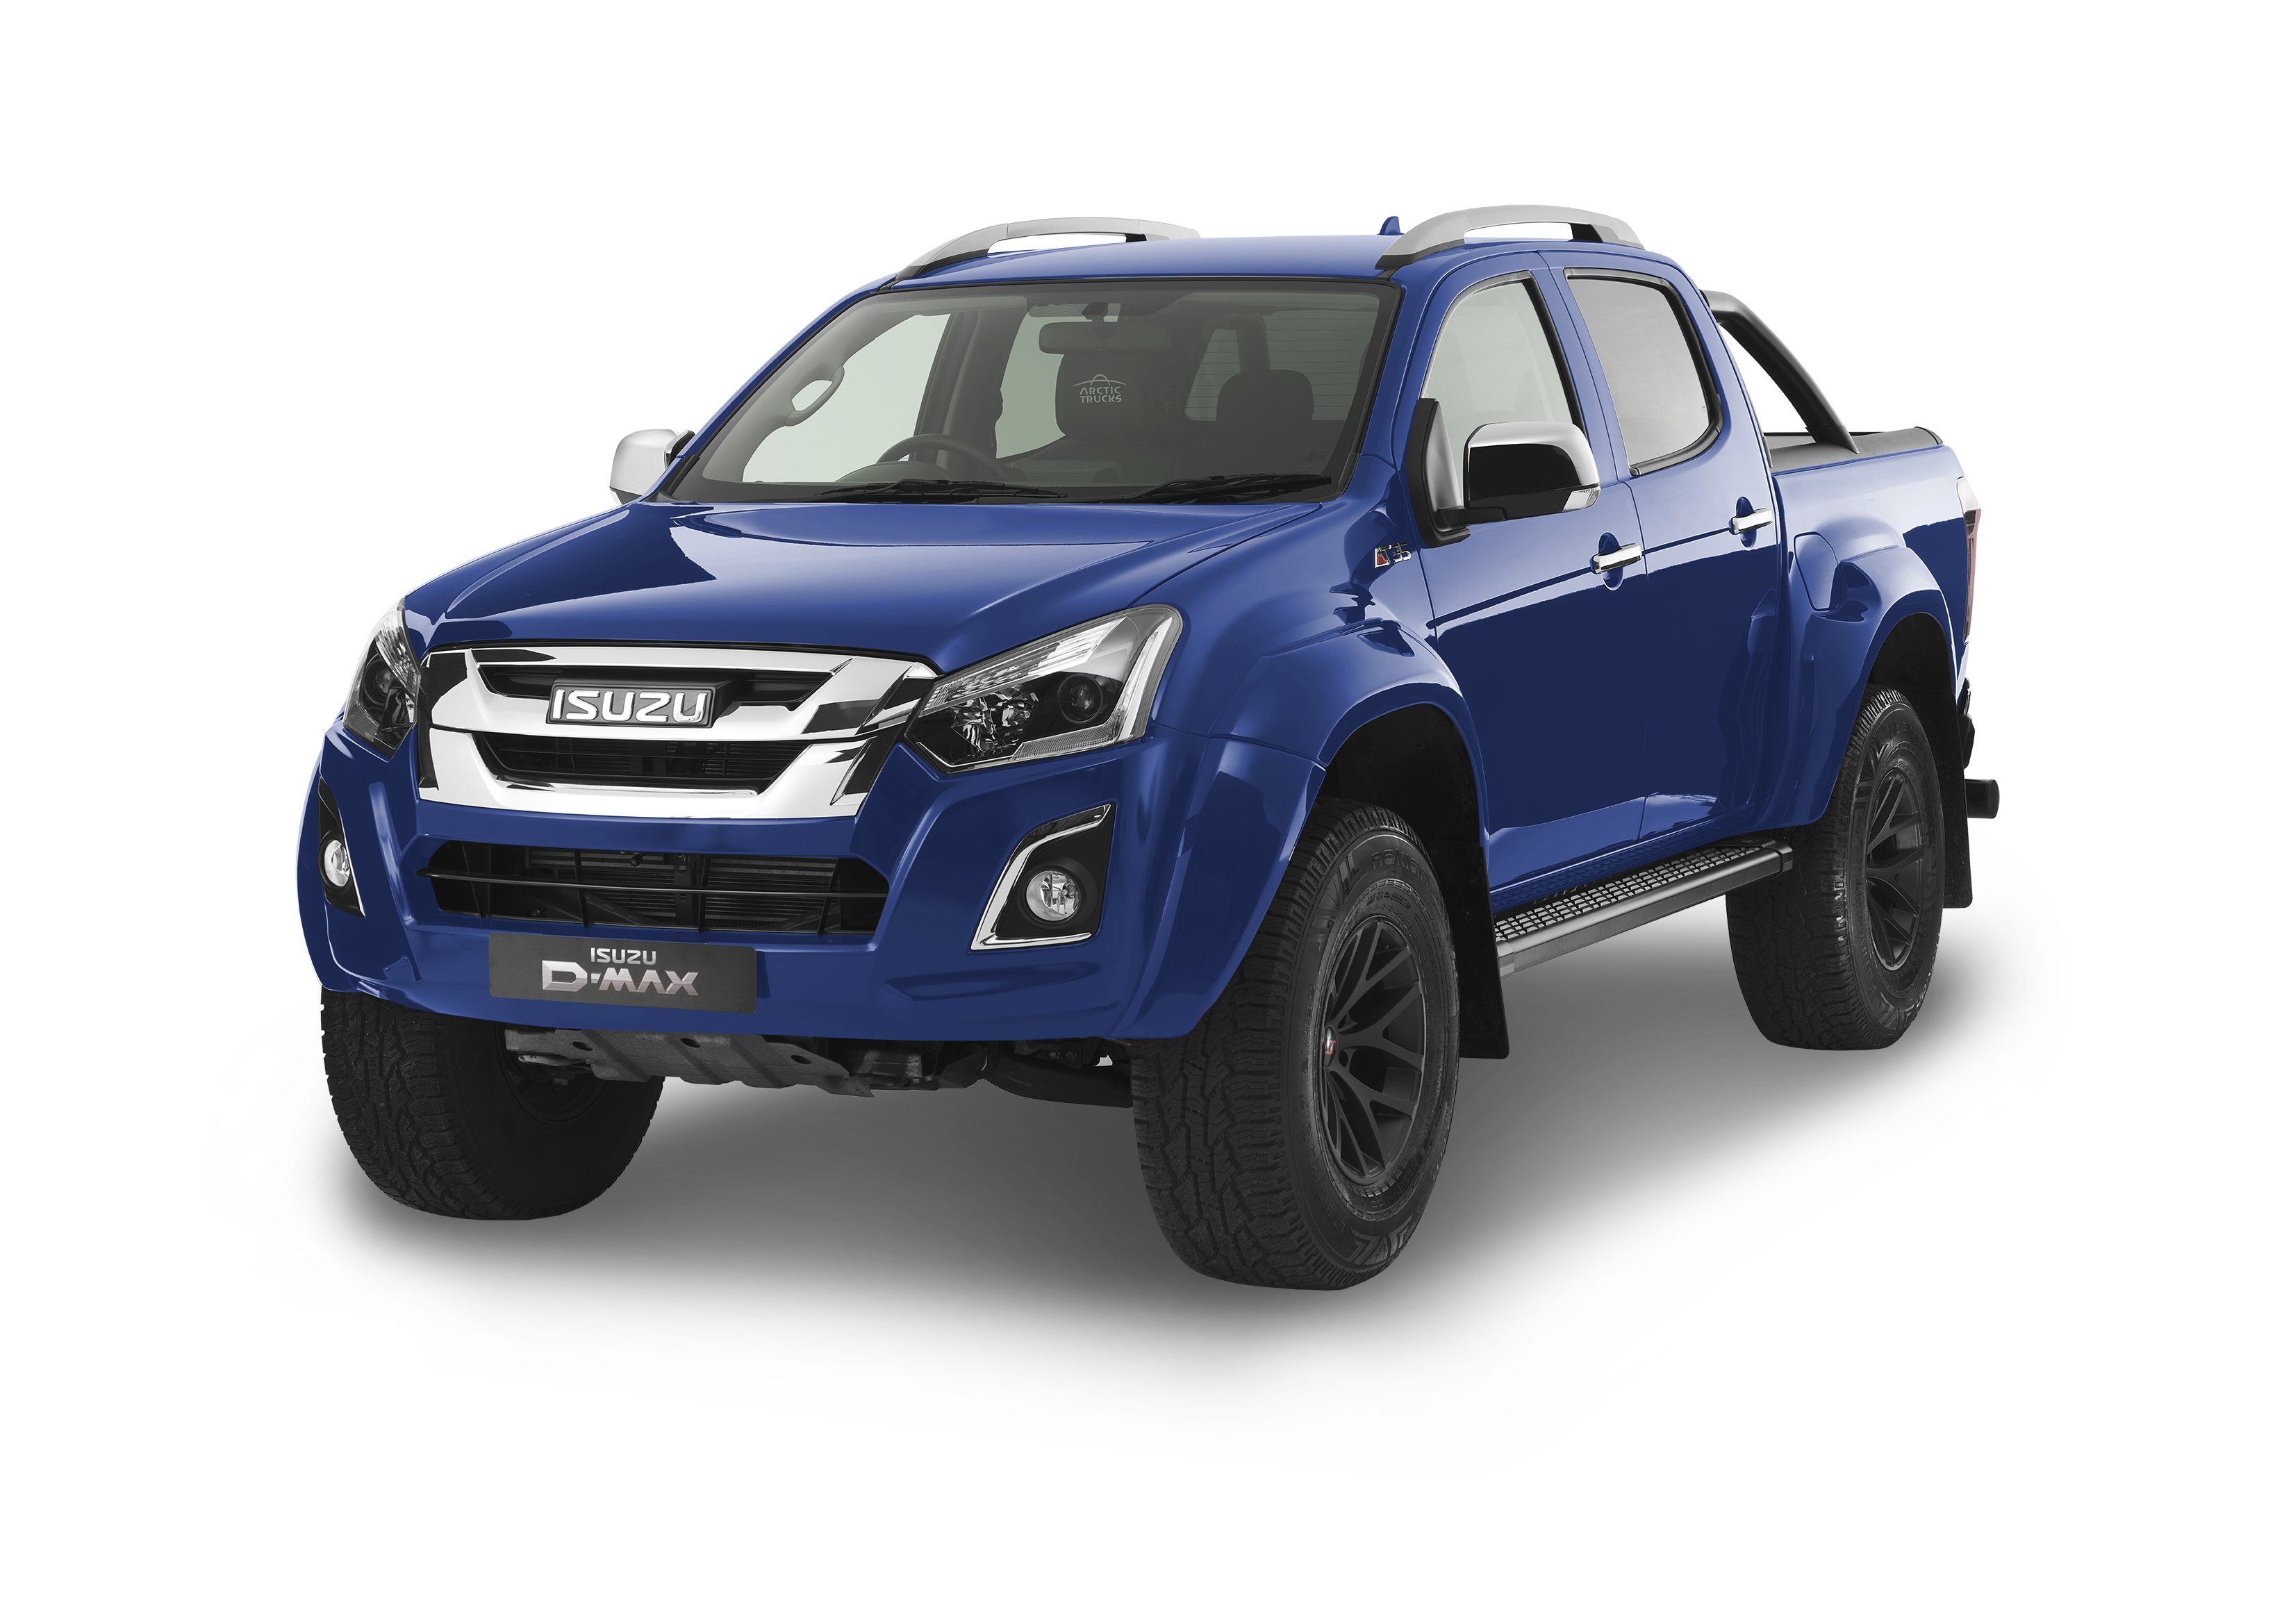 Front view of the Isuzu D-Max Arctic AT35 in blue